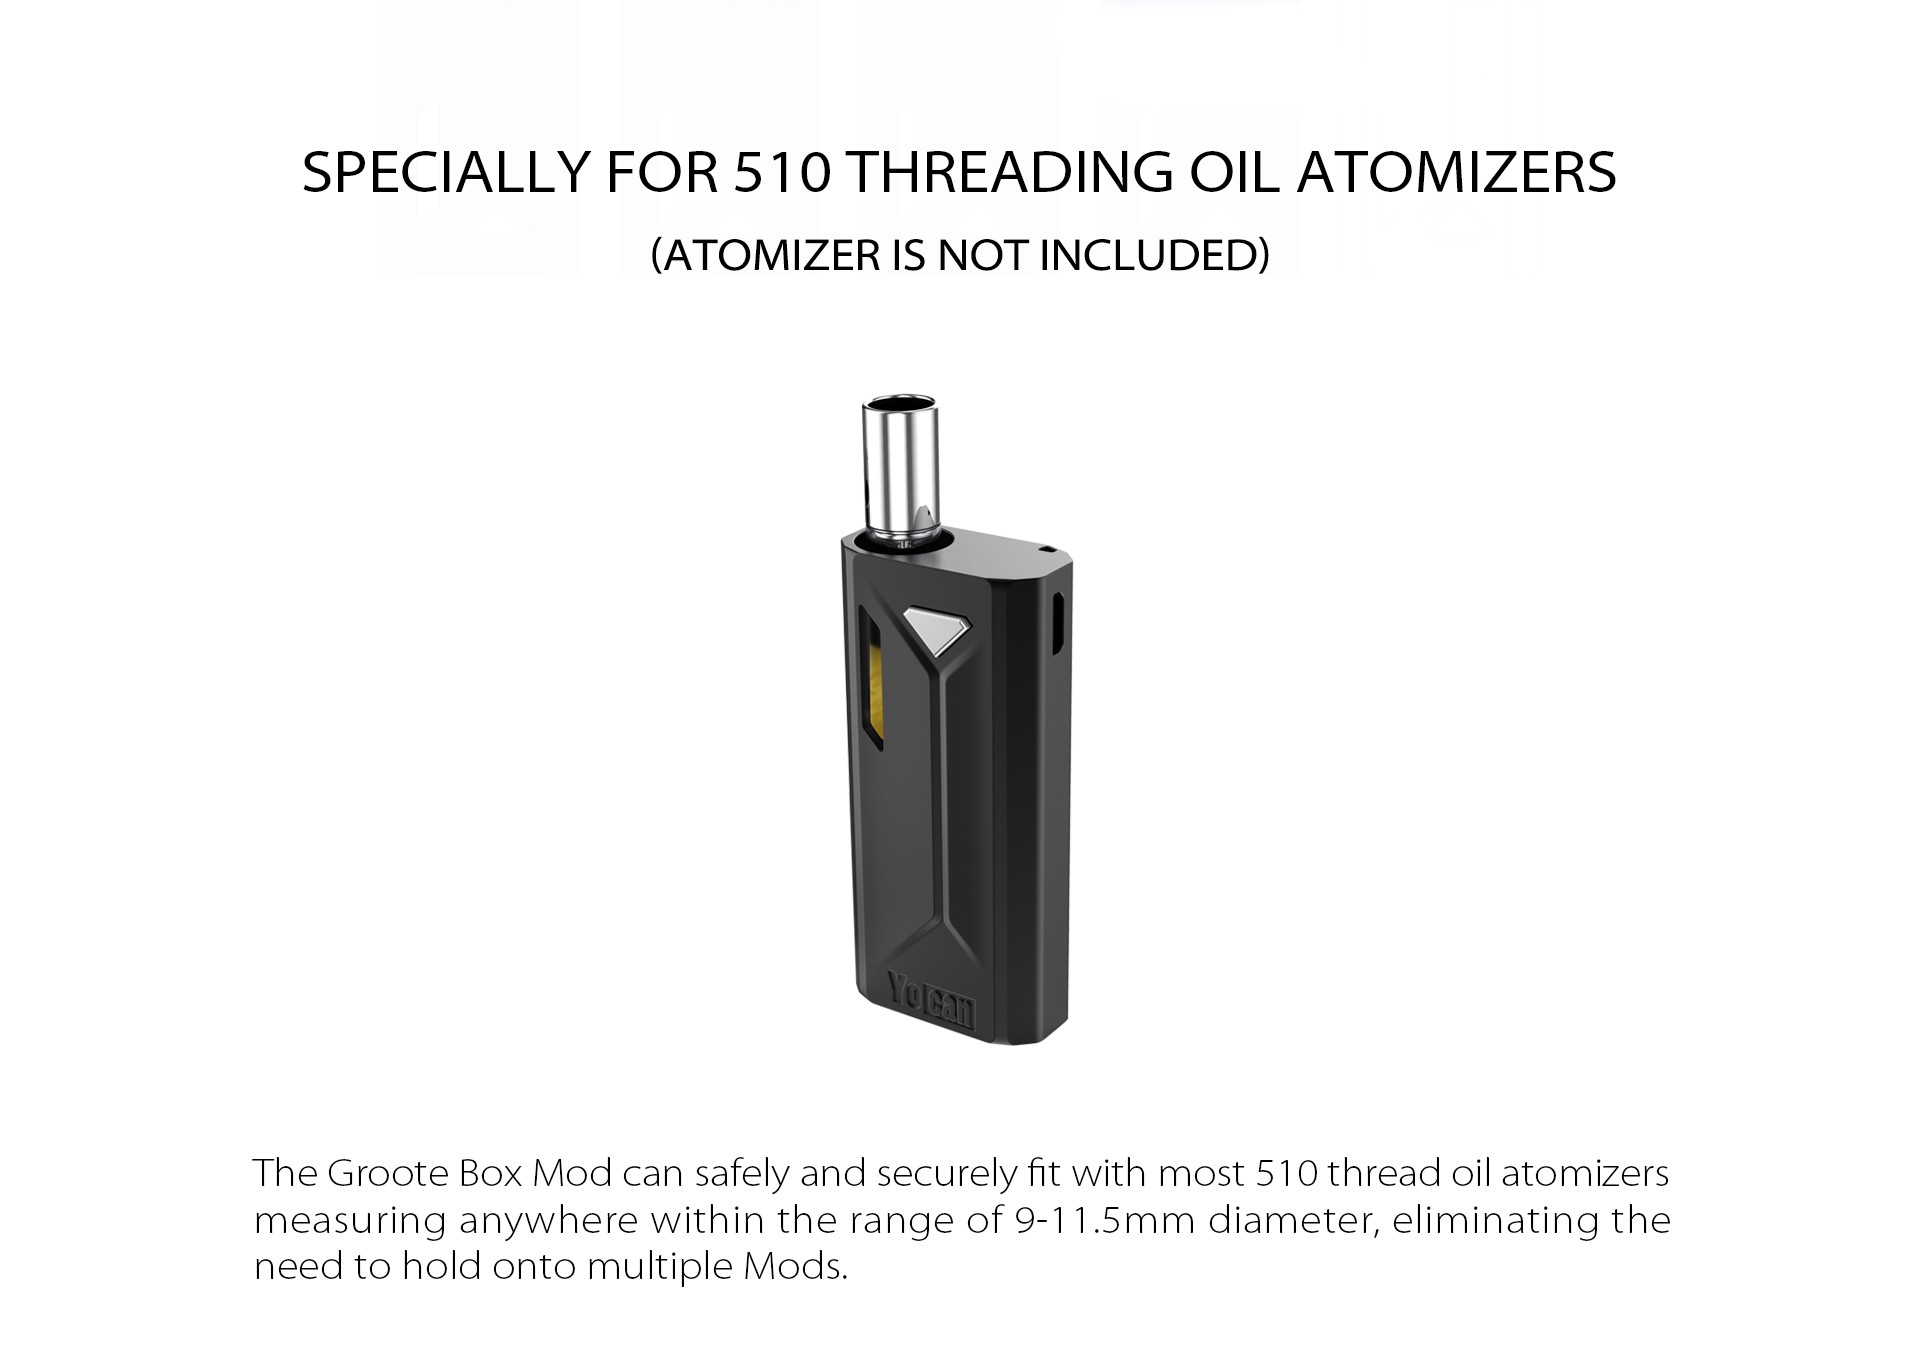 The Yocan Groote Box Mod can safely and securely fit with most 510 thread oil atomizers.